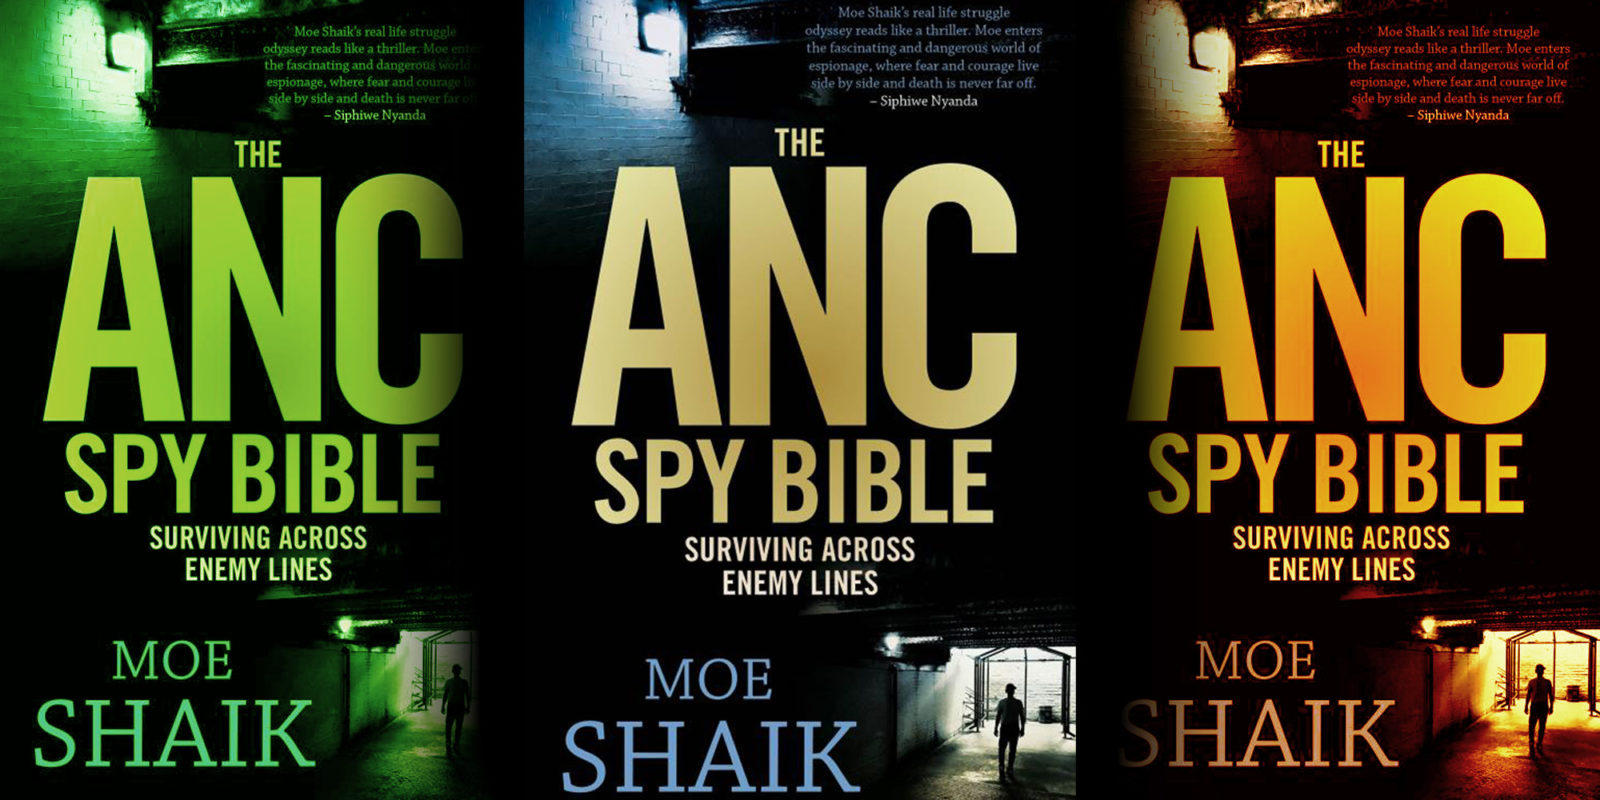 'ANC Spy Bible': a real-life South African thriller, but too much left unsaid